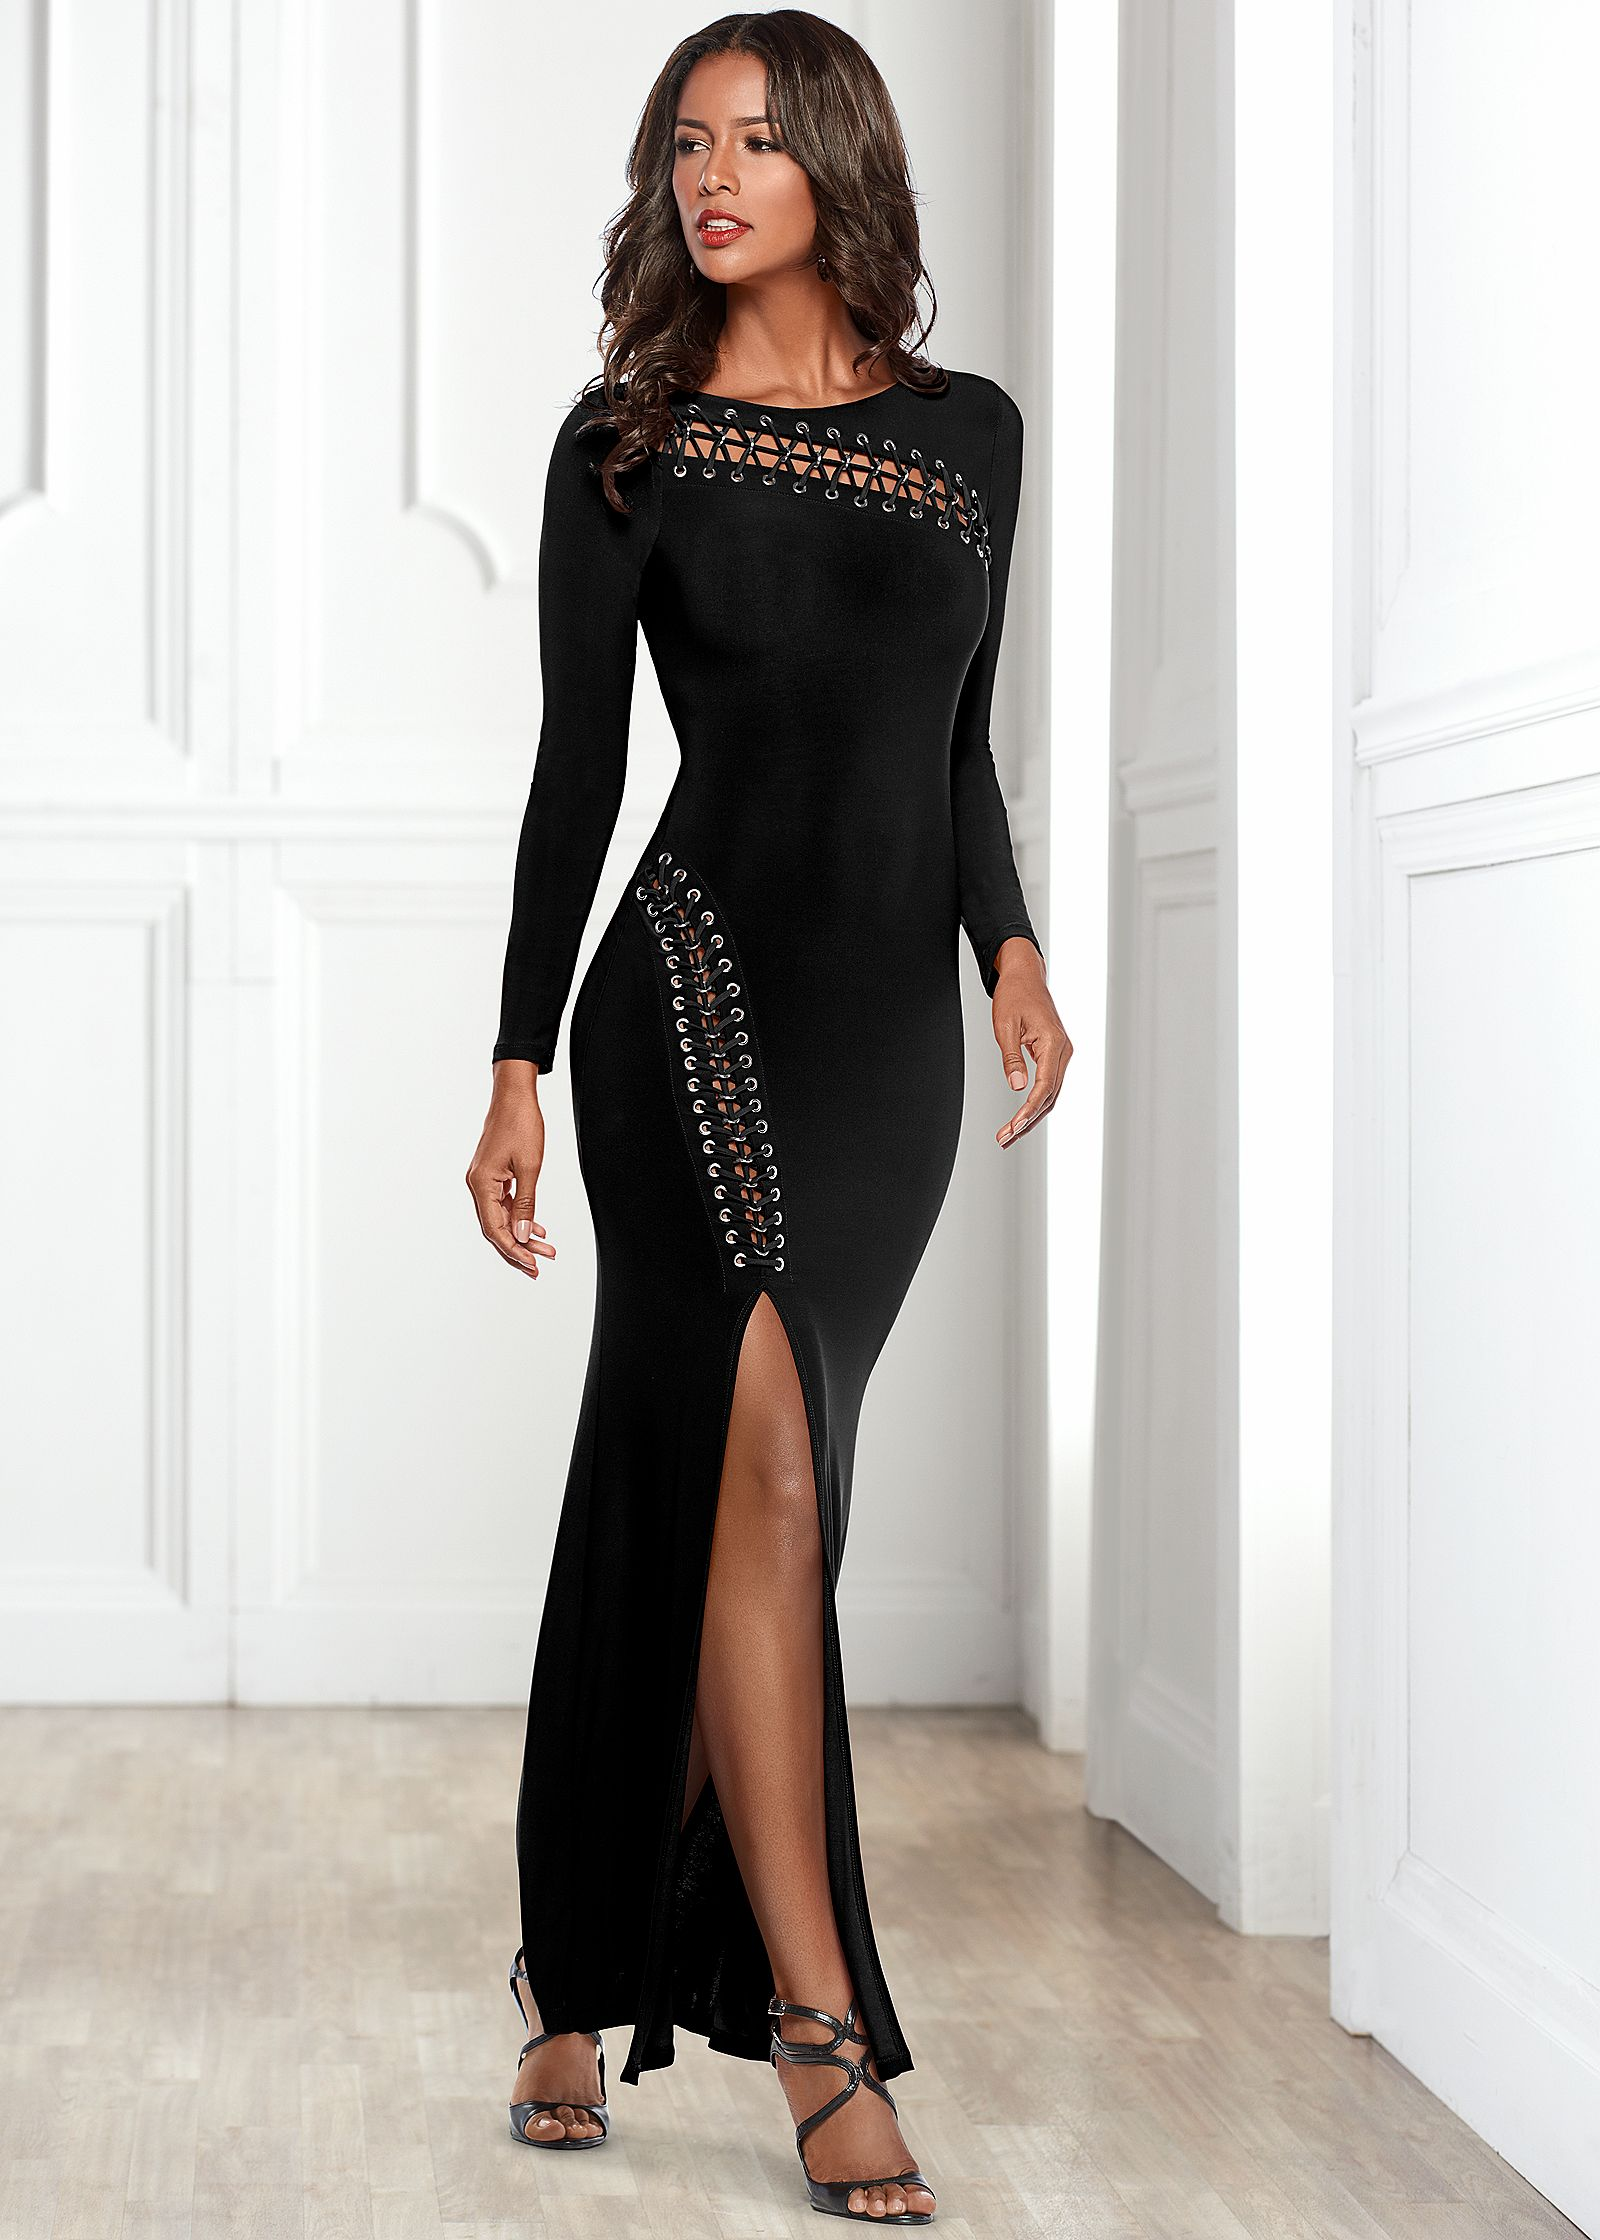 Long black cocktail dresses for women